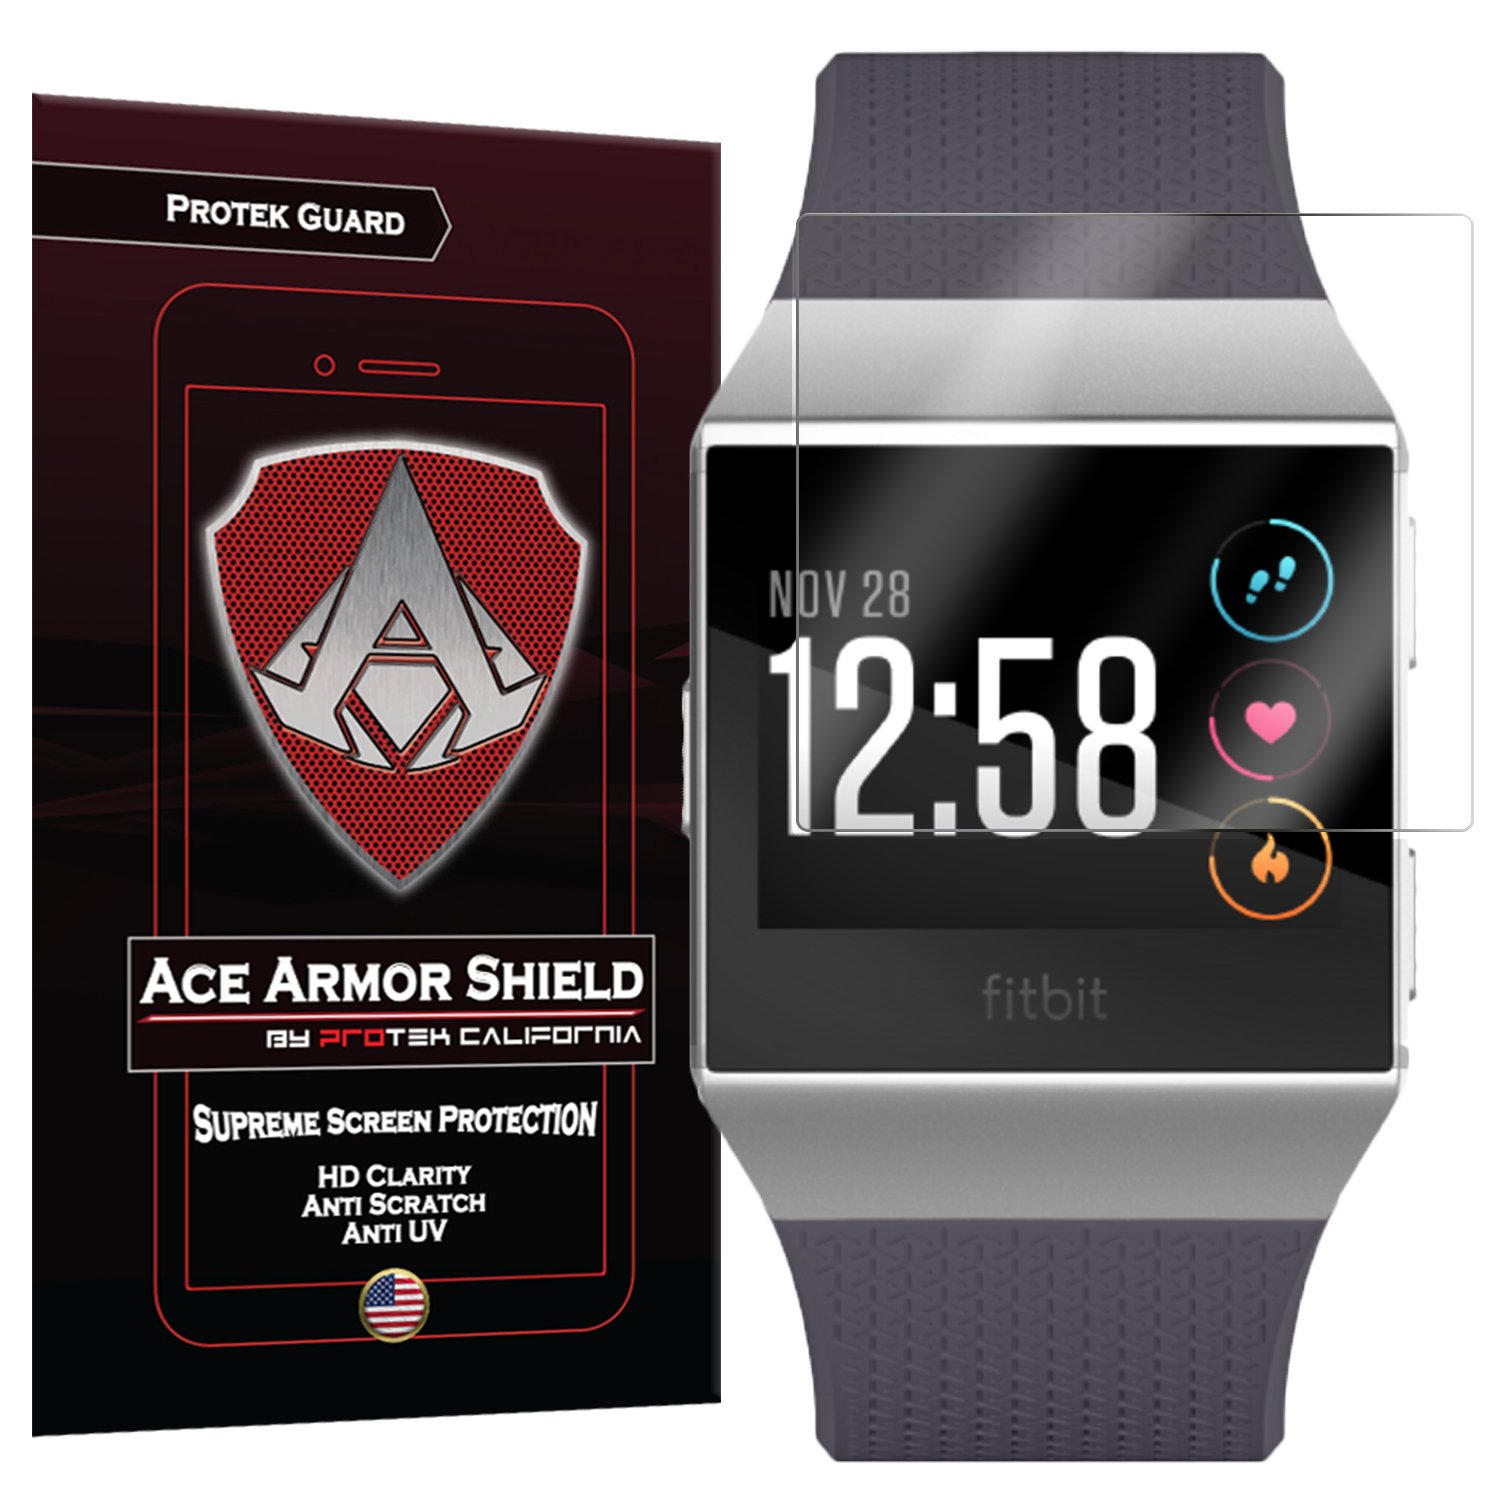 Ace Armor Shield screen protector for Fitbit Ionic Smartwatch 6 pack